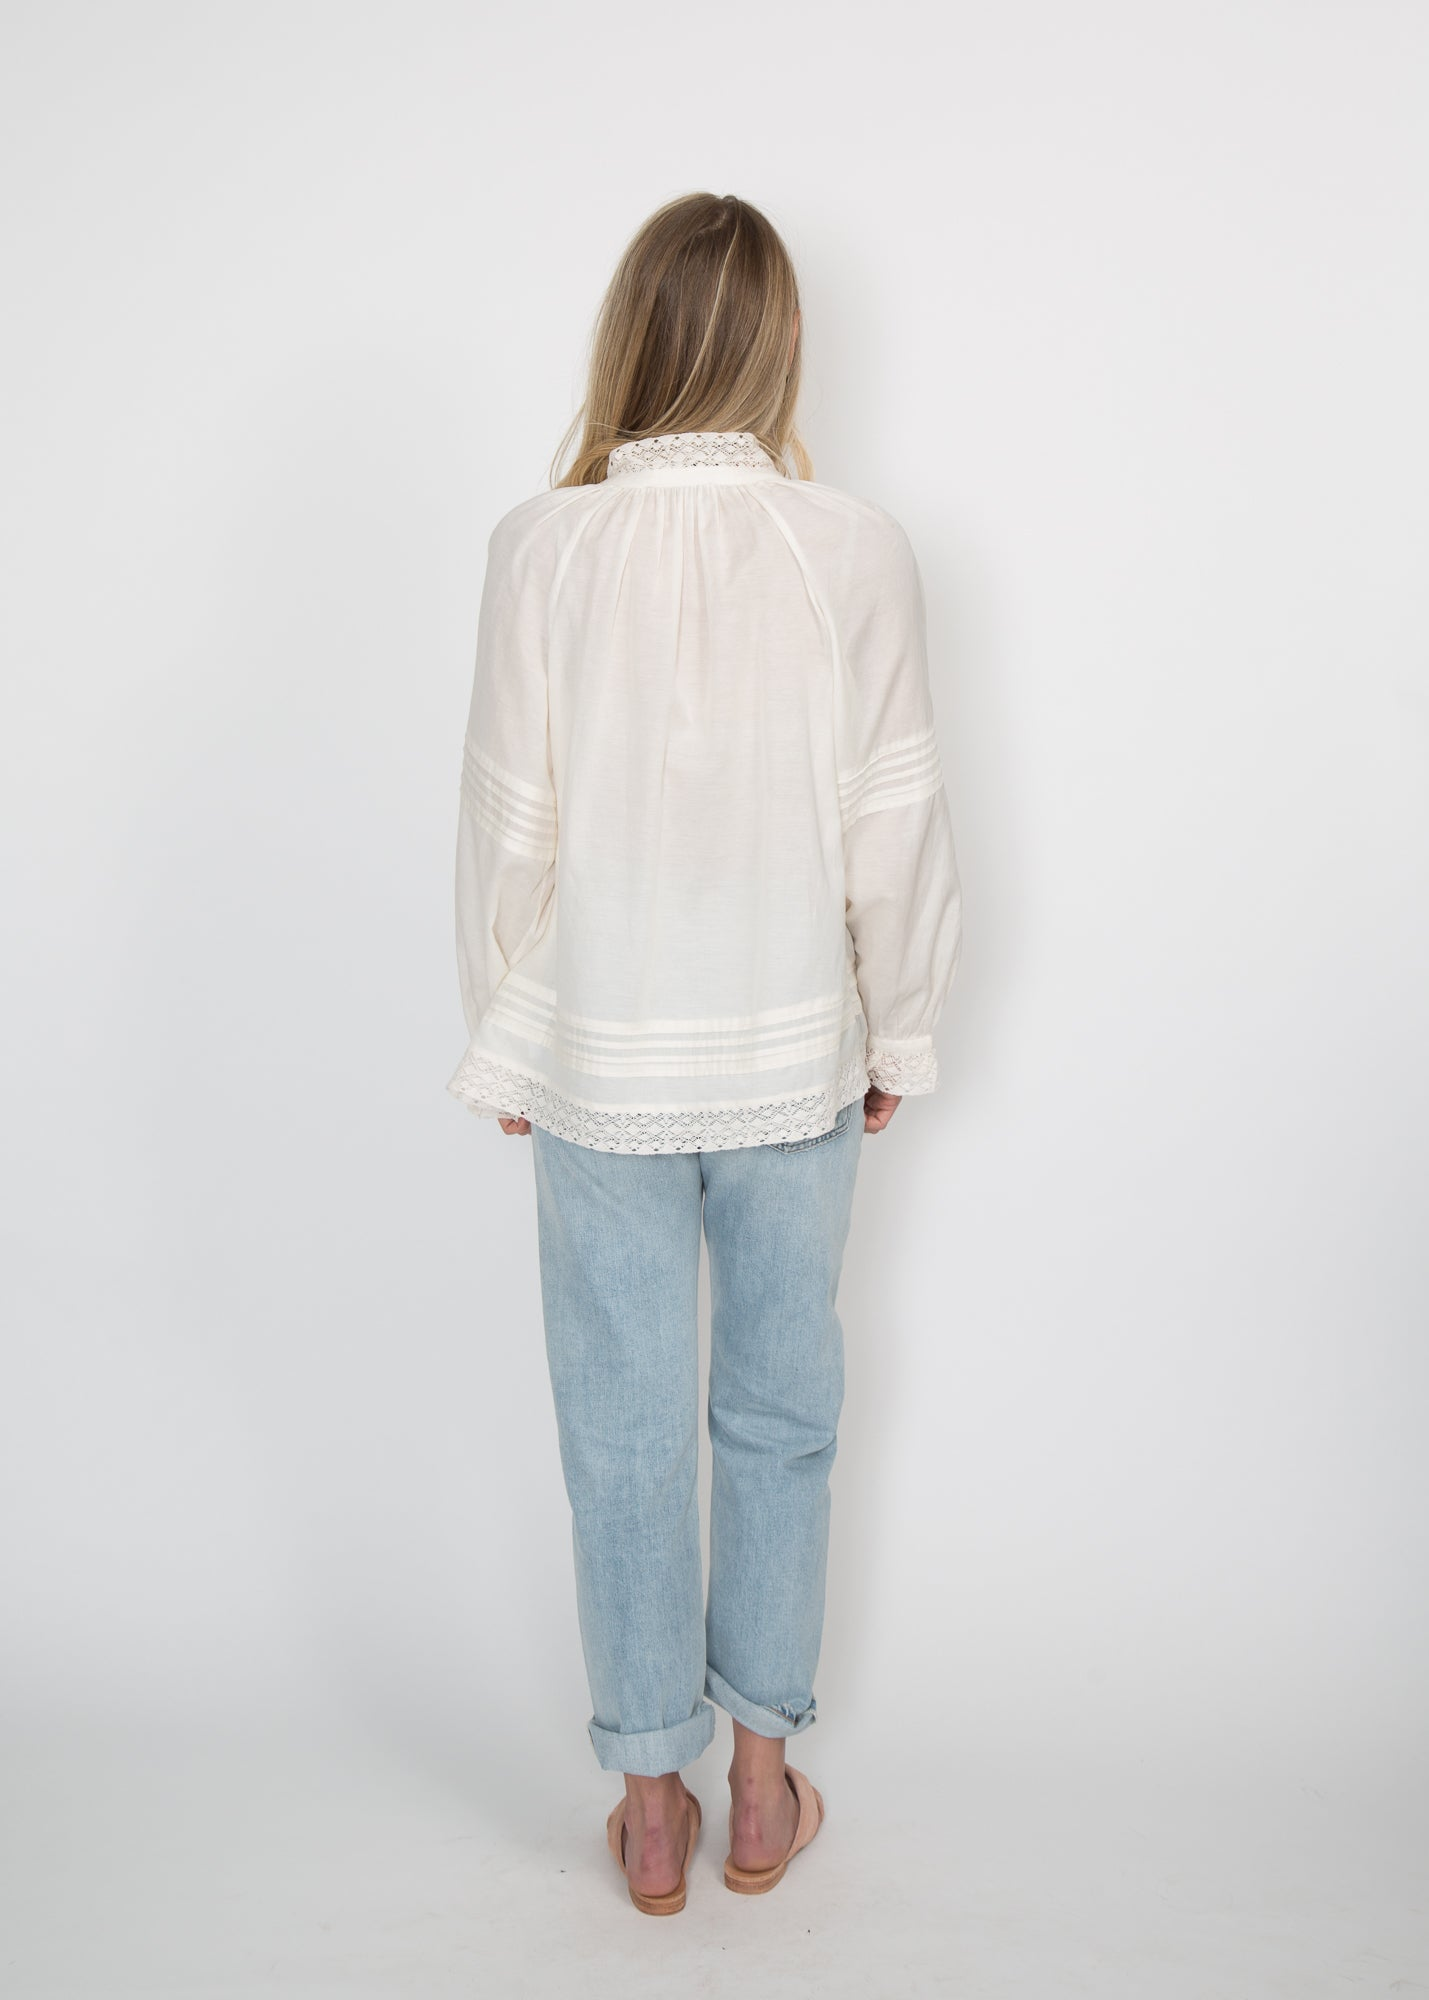 SEA NY Viola Long Sleeve Blouse